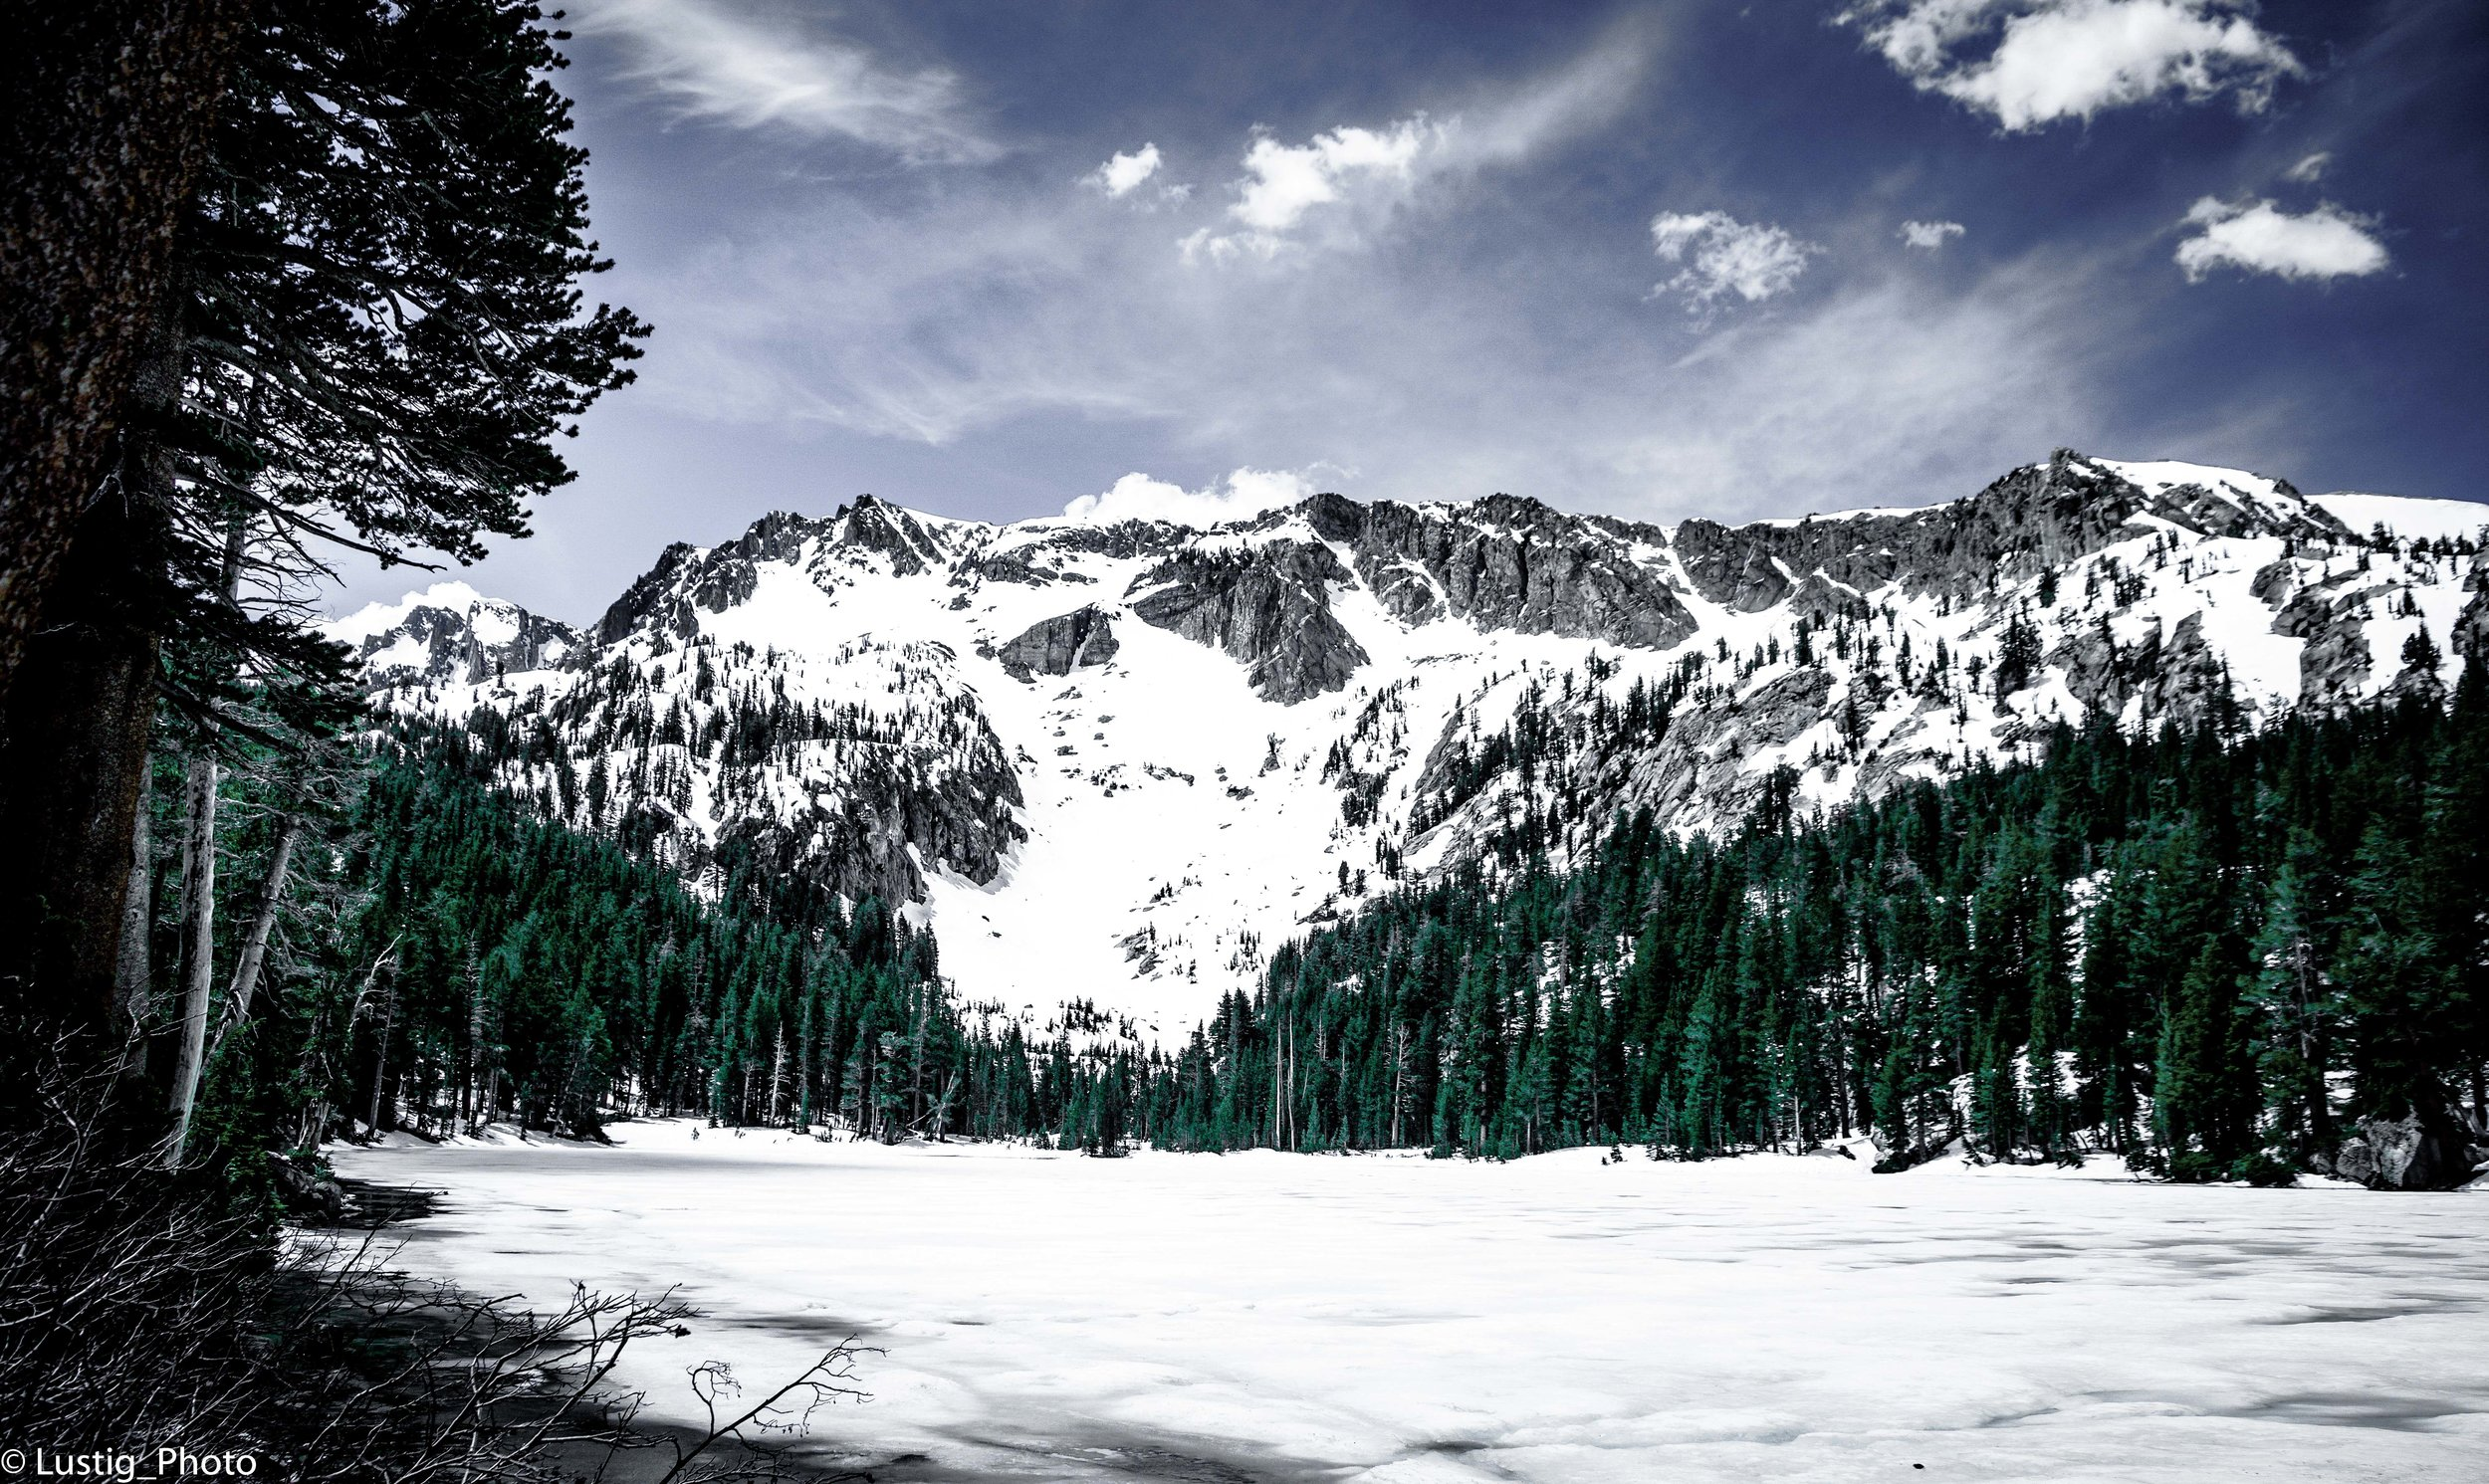 Hey, How is everybody? This photo is another landscape taken in Mammoth Lakes. It was taken last year during a hike last year at Lake George. I wanted to post it on my blog because I felt it adds an awesome winter vibe. It was actually April when I took this. We hiked through deep snow. I bring my camera not planning to take any striking images. It was more for snapshots of the family. But then I found this beautiful composition and took it. What do you think? If you would like to purchase the photo it is available digitally. Prints will be available soon